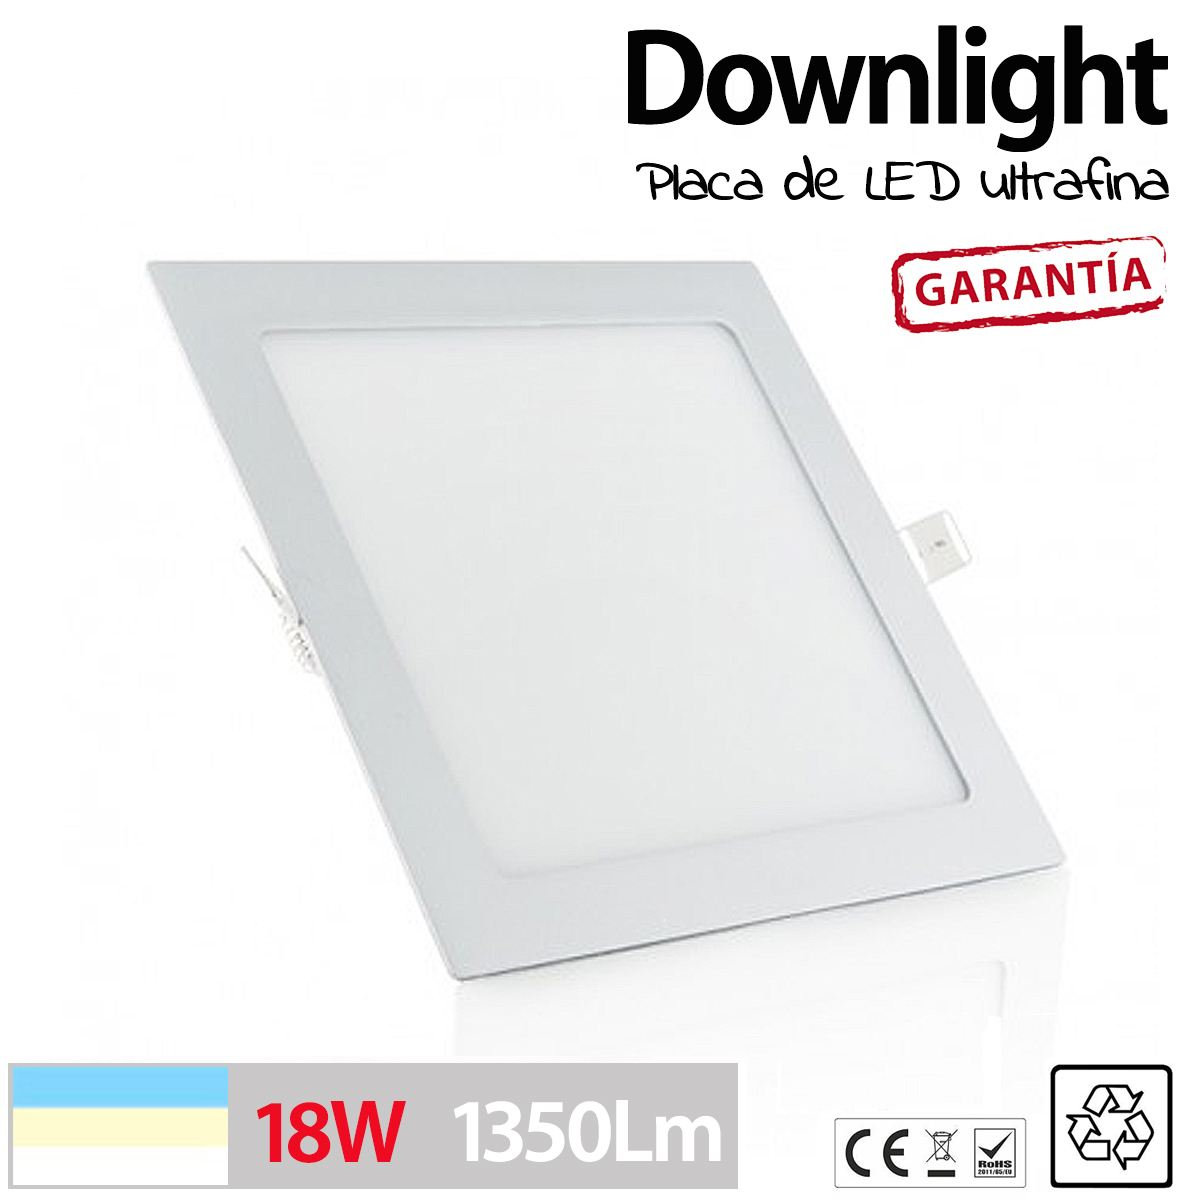 Downlight cuadrado 18w ultra fino placa led luz cocina - Downlight cocina led ...